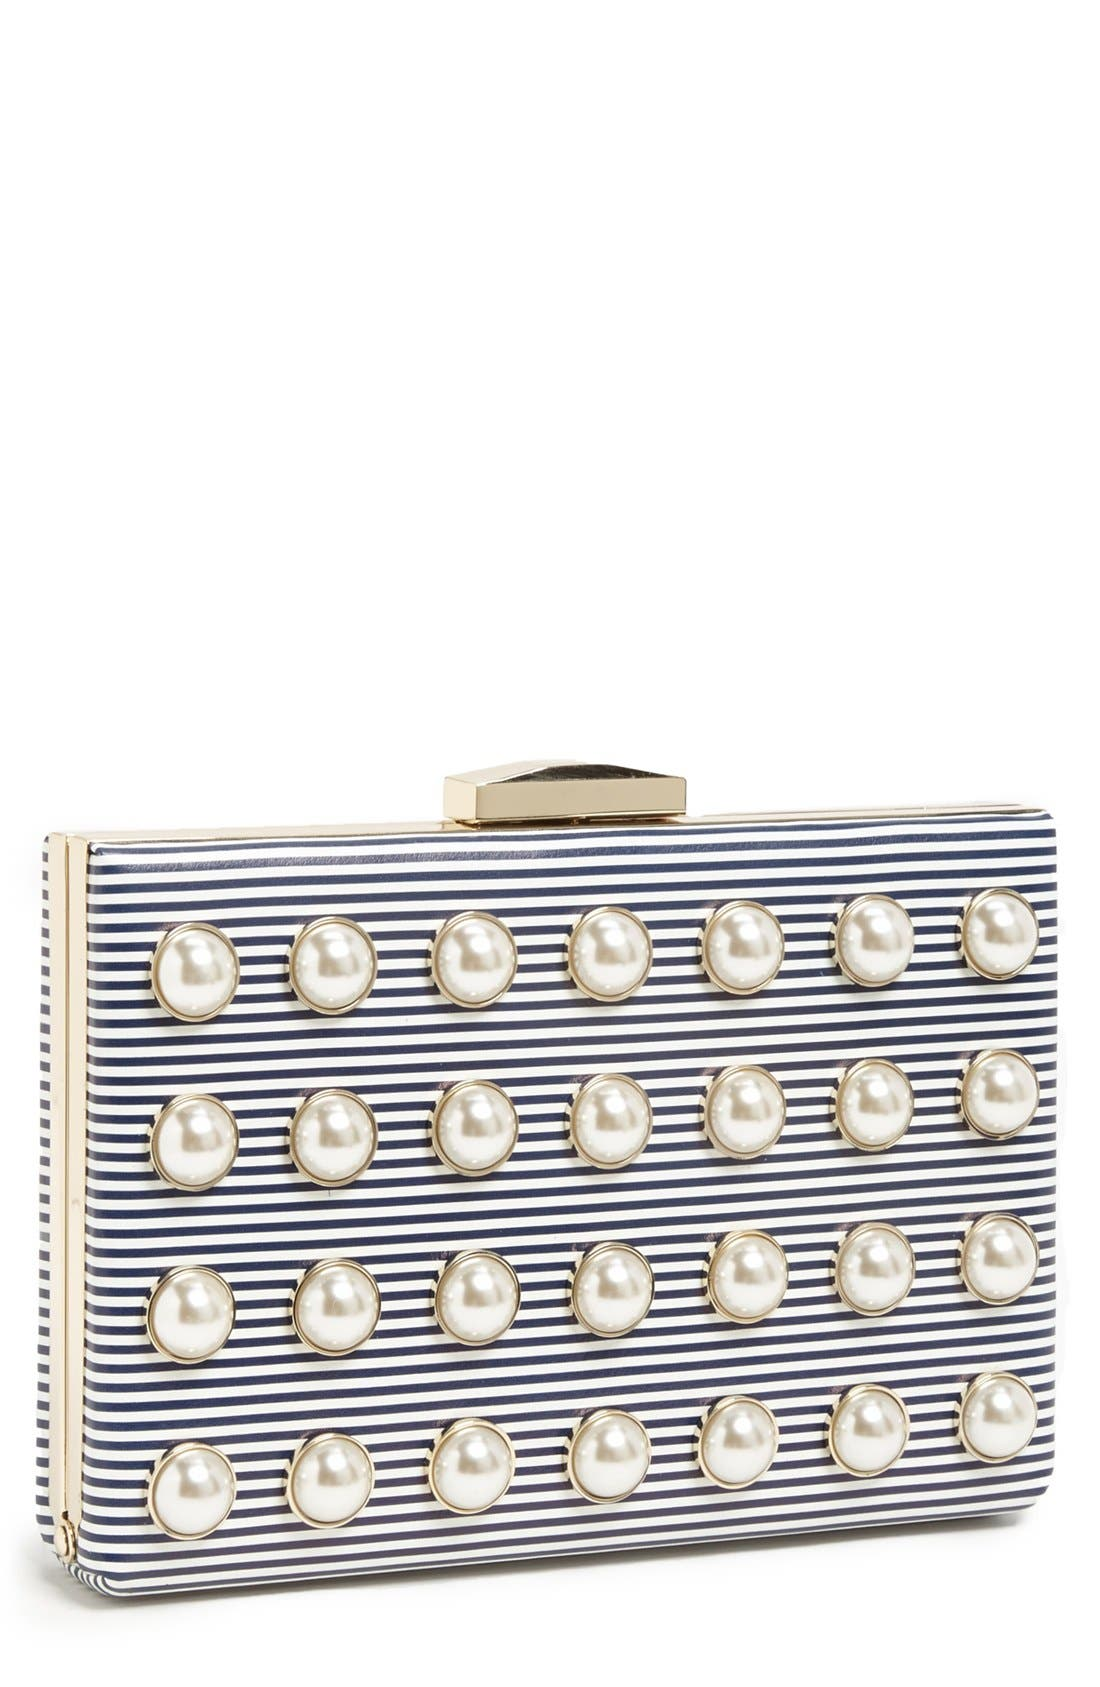 Alternate Image 1 Selected - kate spade new york 'georgica road - emanuelle' clutch